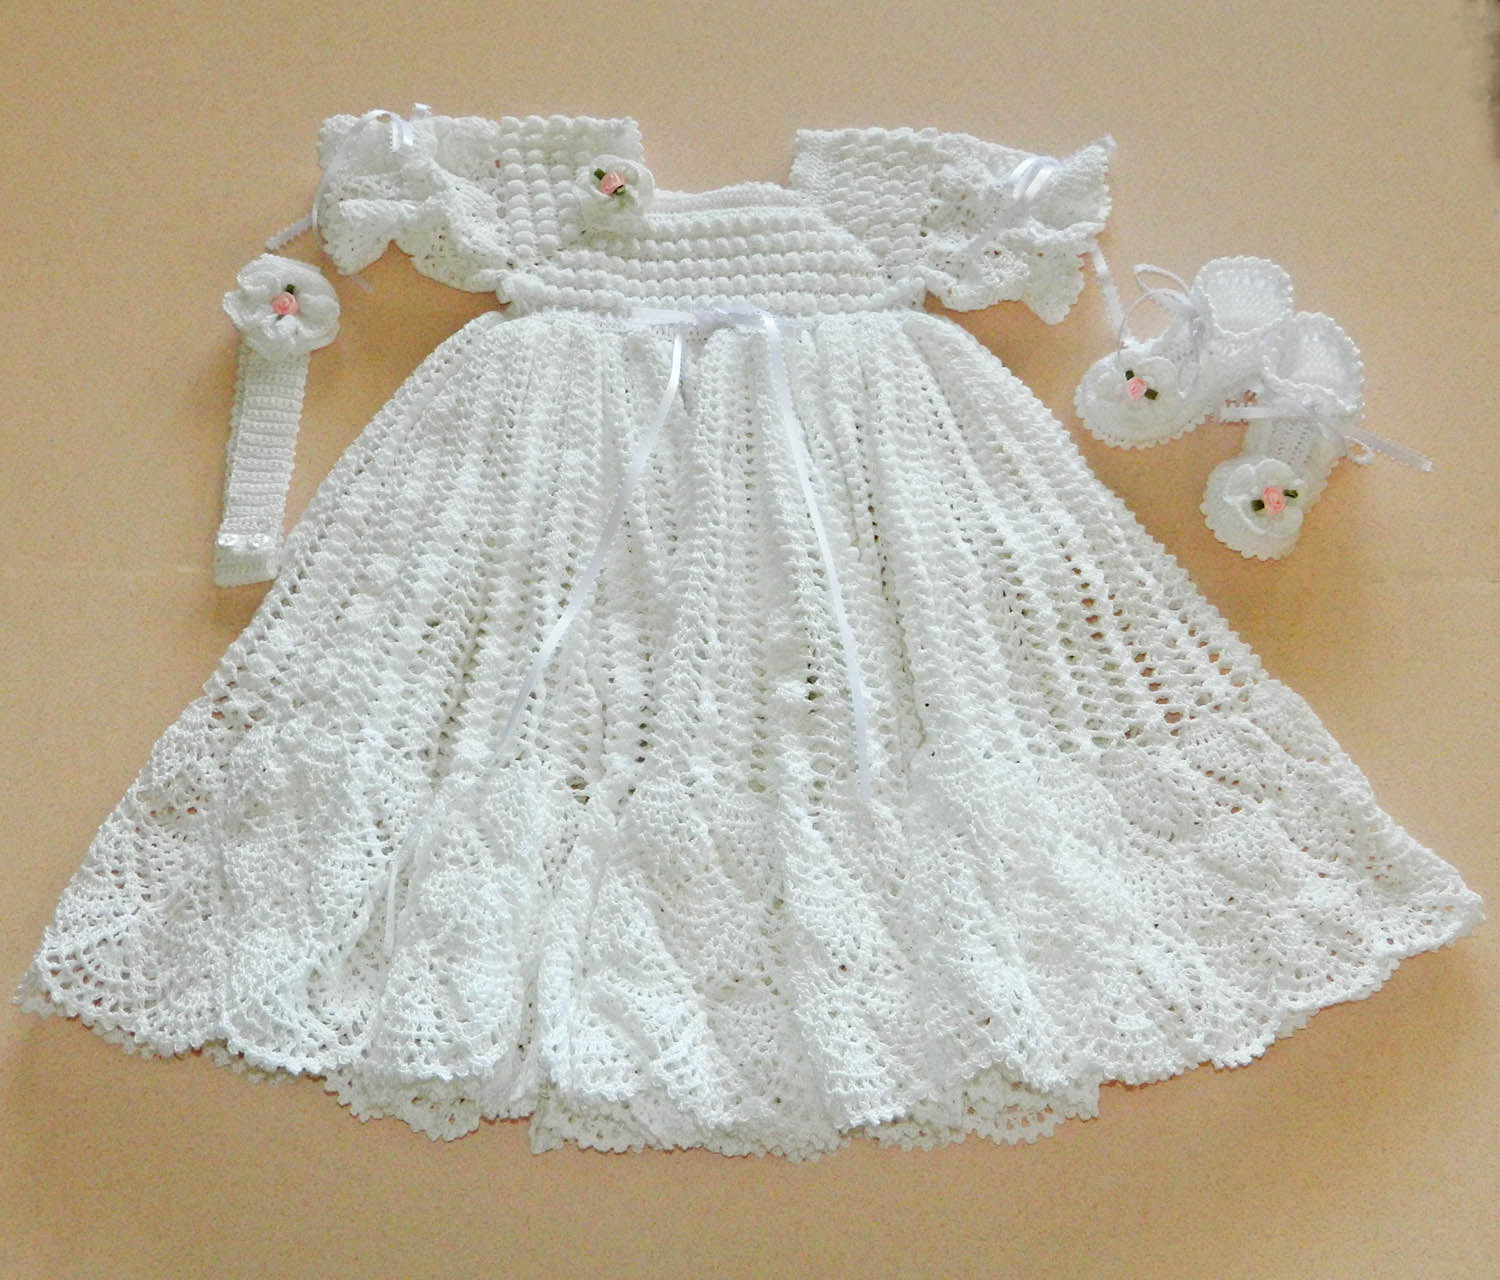 Best Of White Crochet Christening Gown with White Crochet Slippers Baptism Gown Pattern Of Fresh 43 Ideas Baptism Gown Pattern